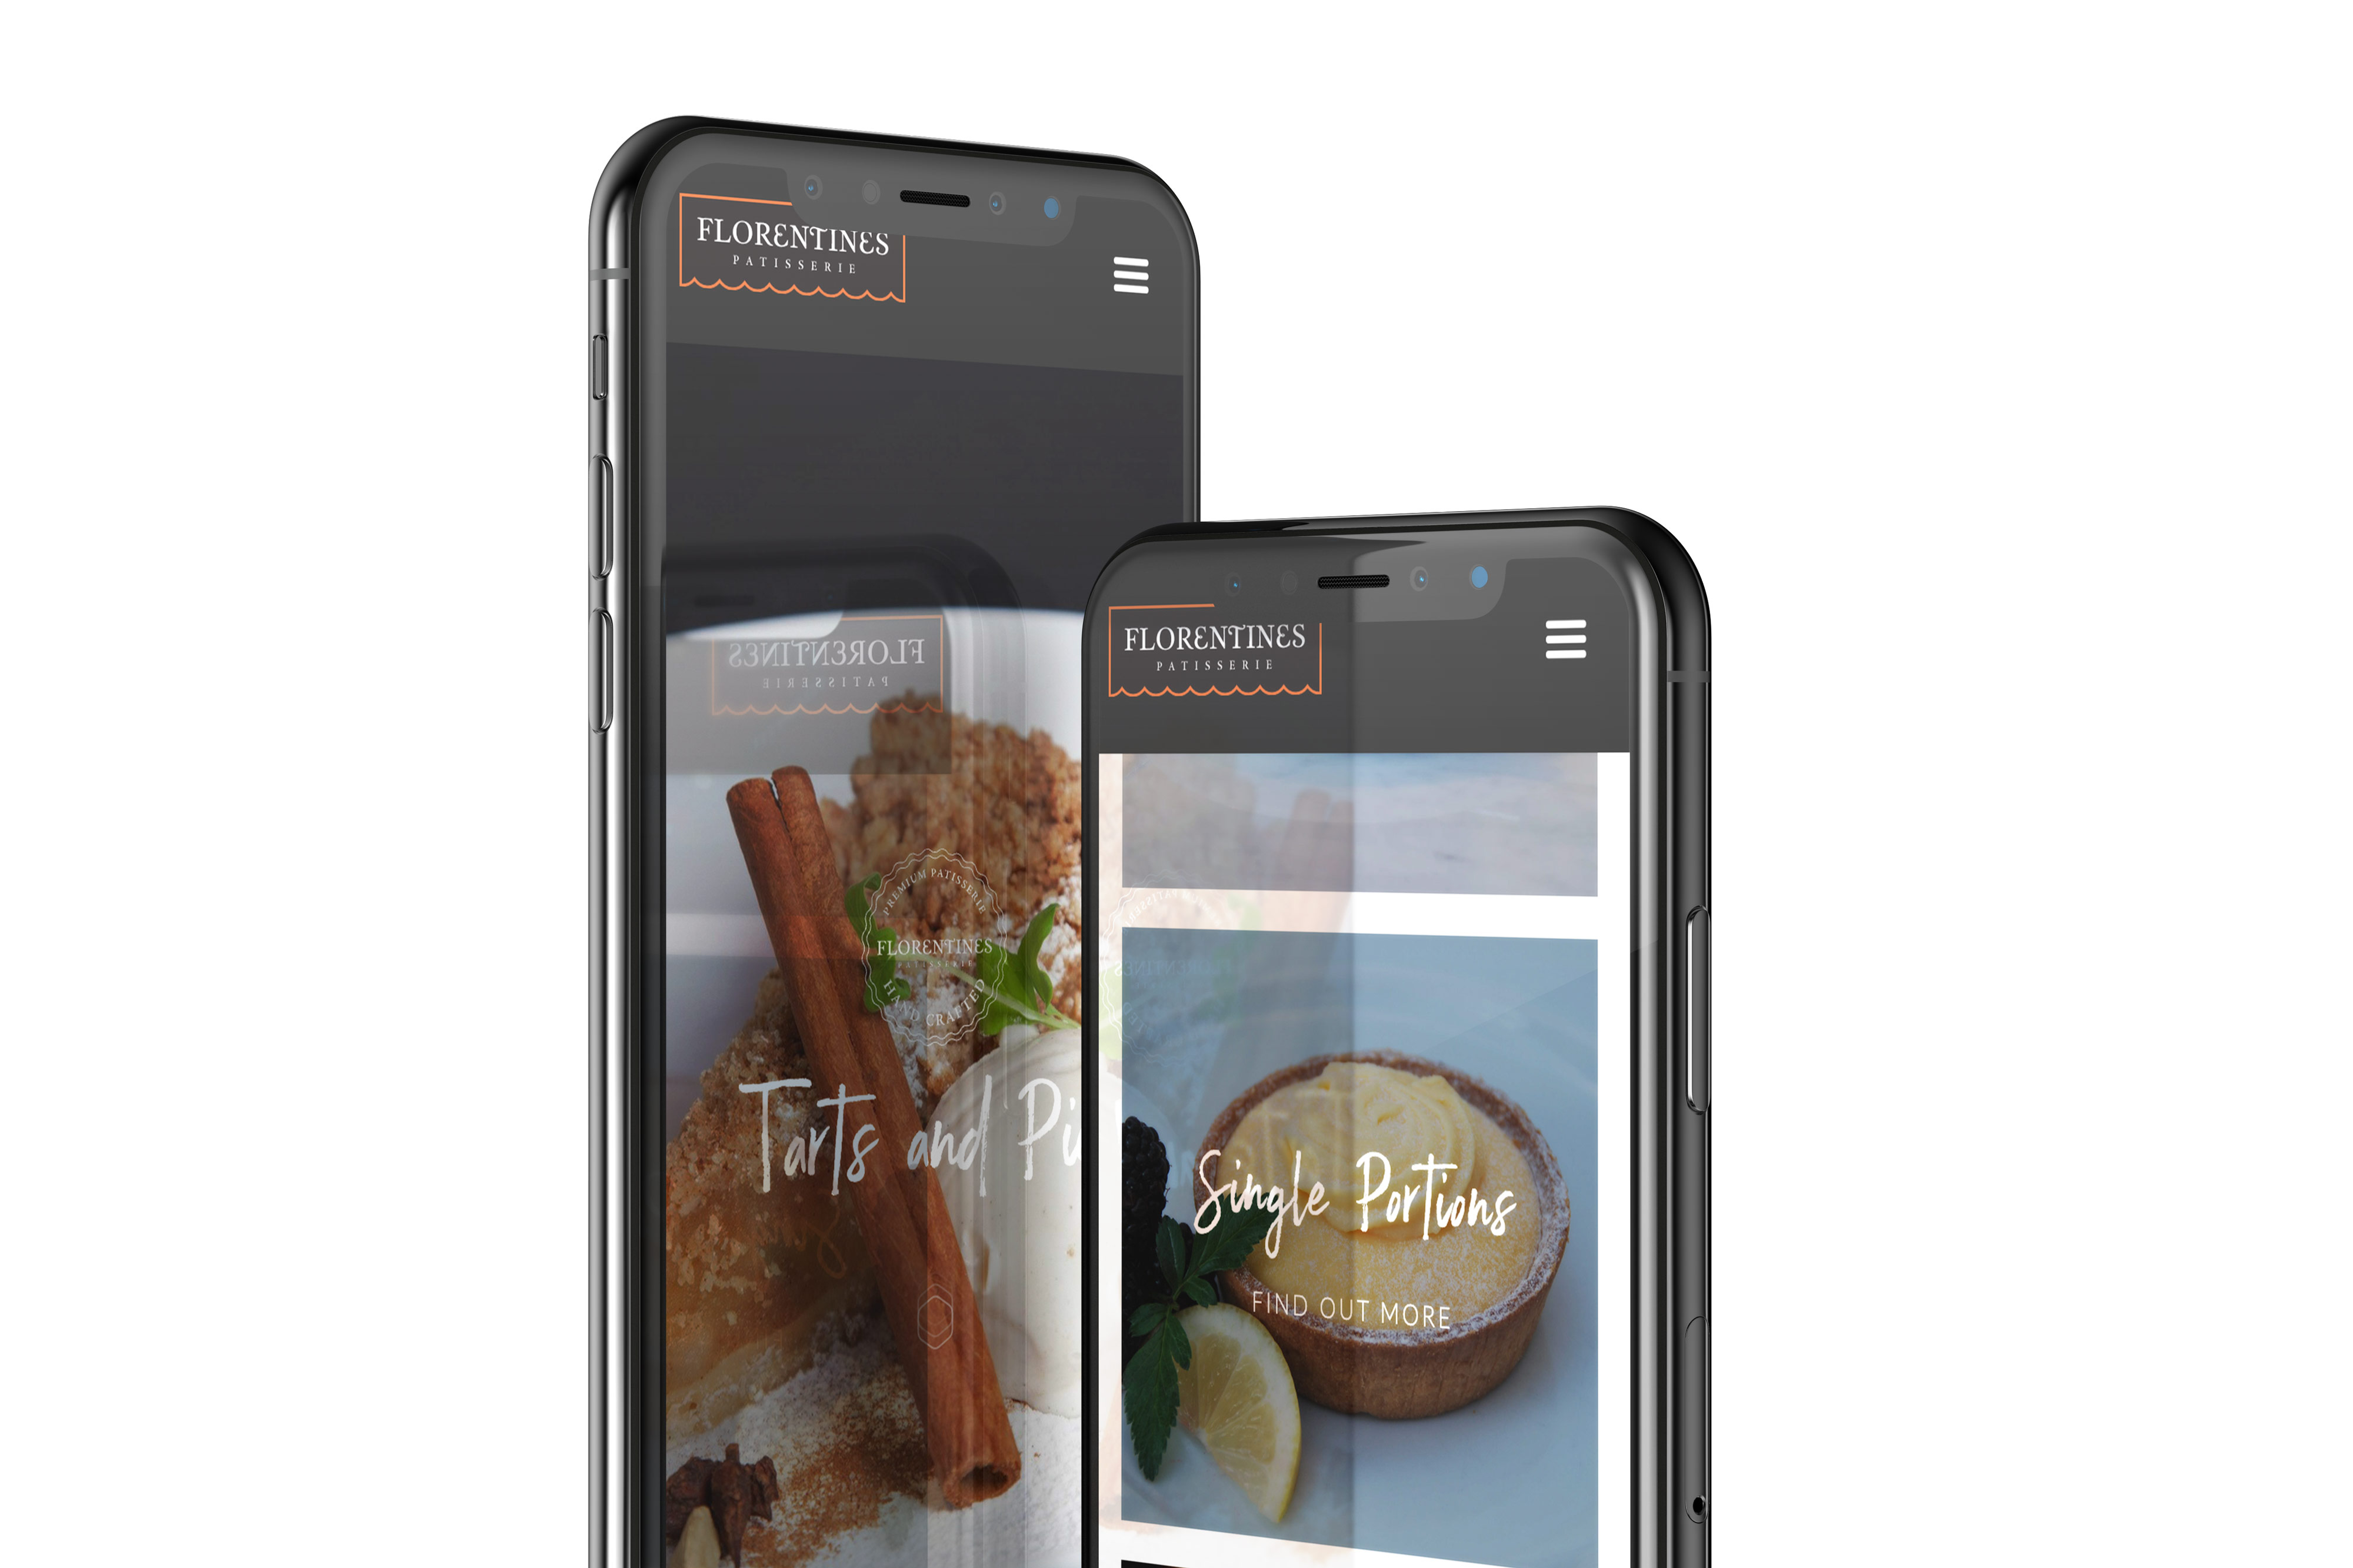 A mobile phone view of the cakes pages from the Florentines website